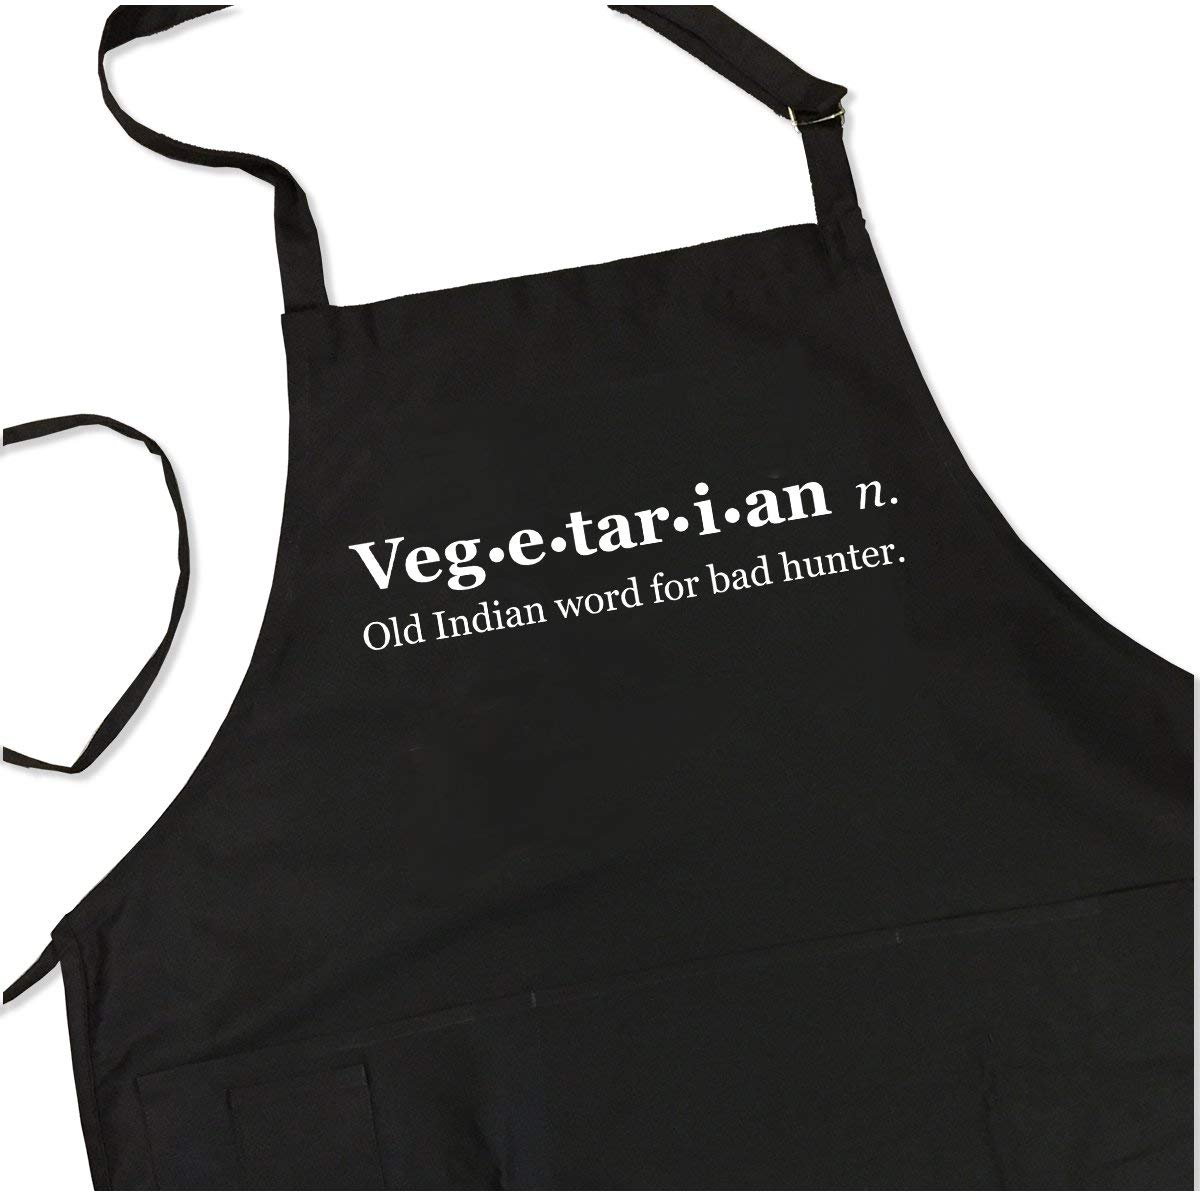 Funny Vegetarian Apron - Old Indian Word for Bad Hunter - BBQ Apron for Dad - 1 Size Fits All Chef Quality Poly/Cotton 4 Utility Pockets, Adjustable Neck and Extra Long Waist Ties